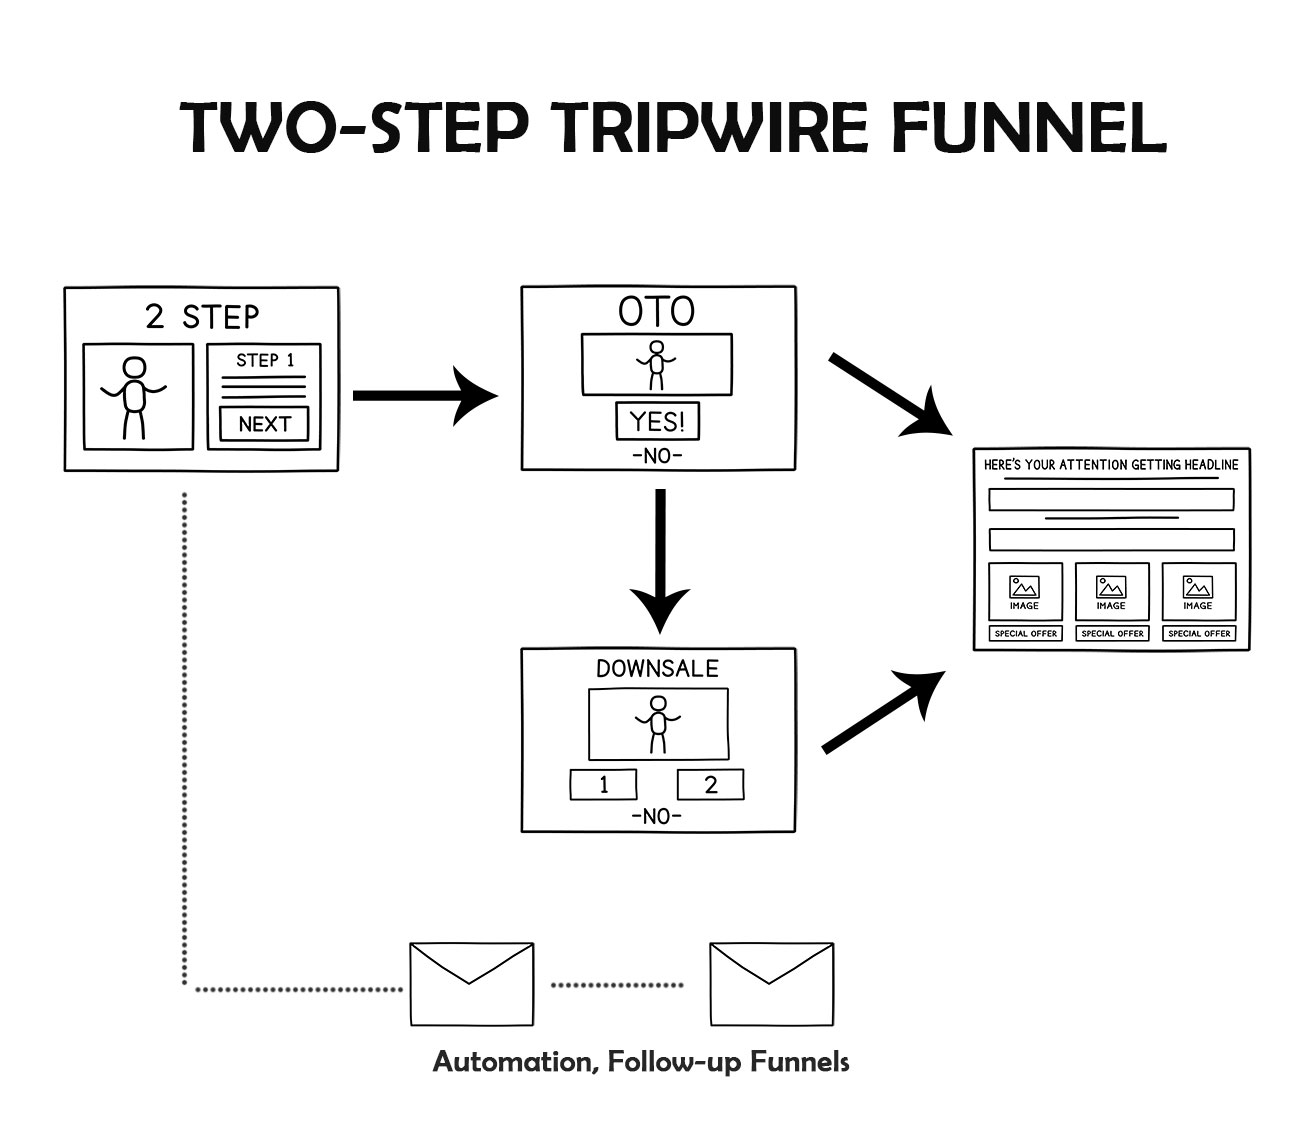 Two-Step Tripwire Funnel | Funnels Chef